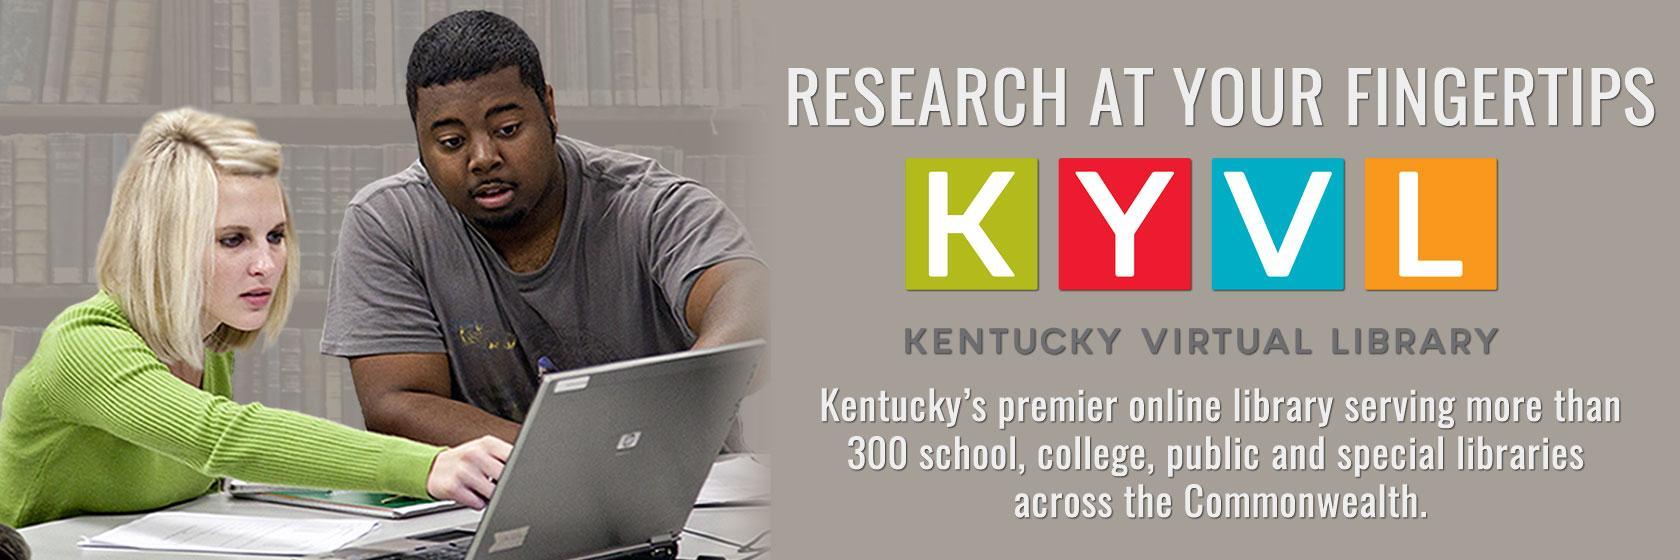 Learn about how the Kentucky Virtual Library serves libraries and citizens across the Commonwealth.